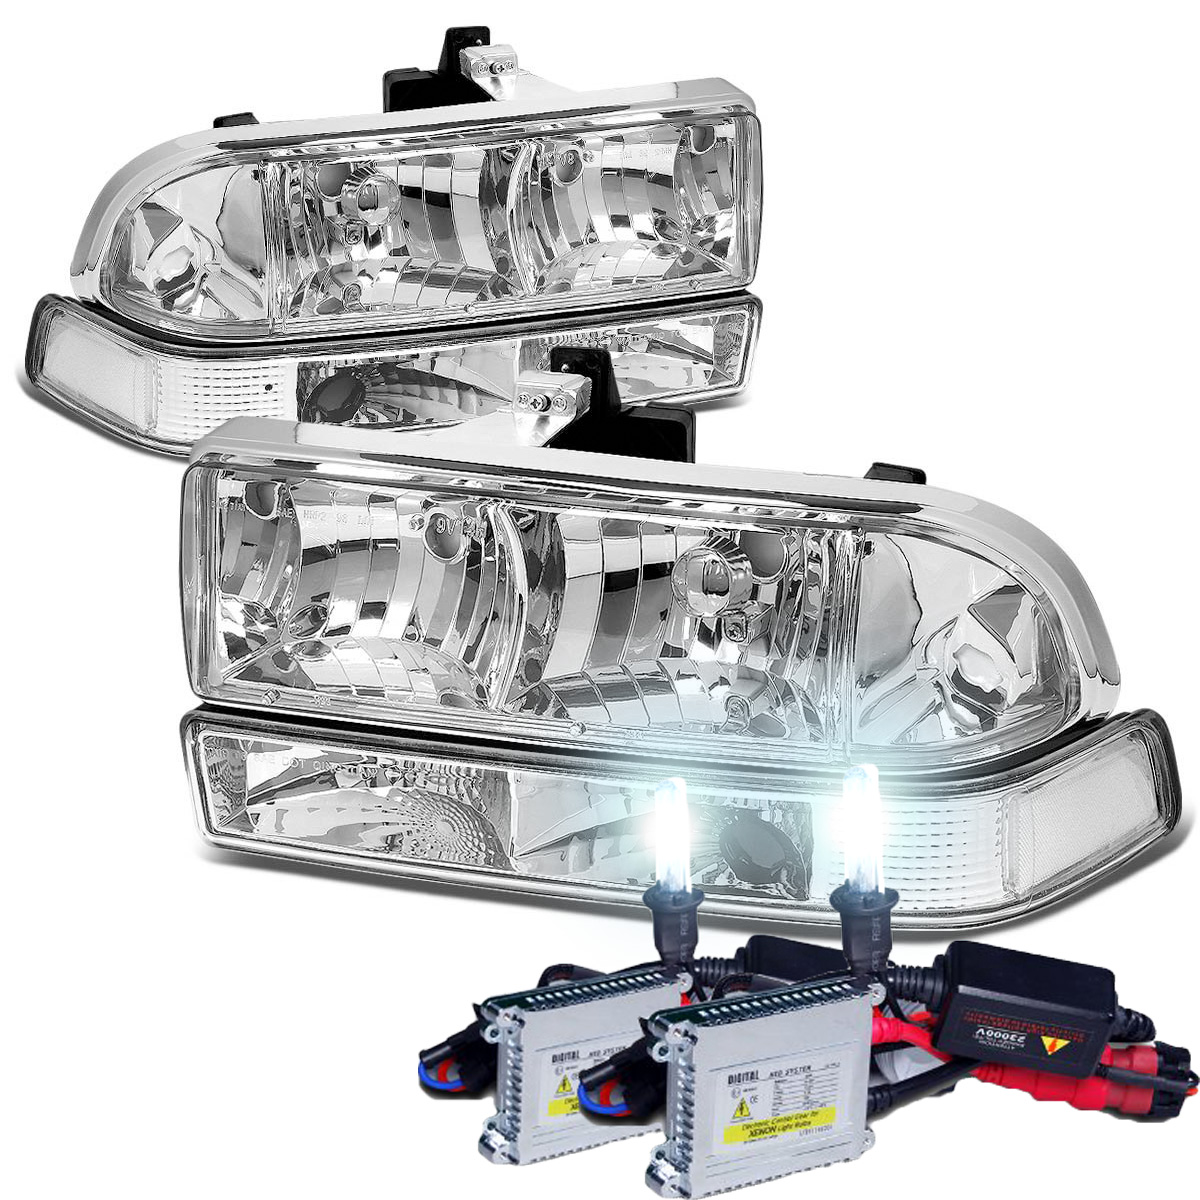 hid xenon 98 04 chevy s10 blazer euro style crystal headlights bumper parking lens chrome. Black Bedroom Furniture Sets. Home Design Ideas